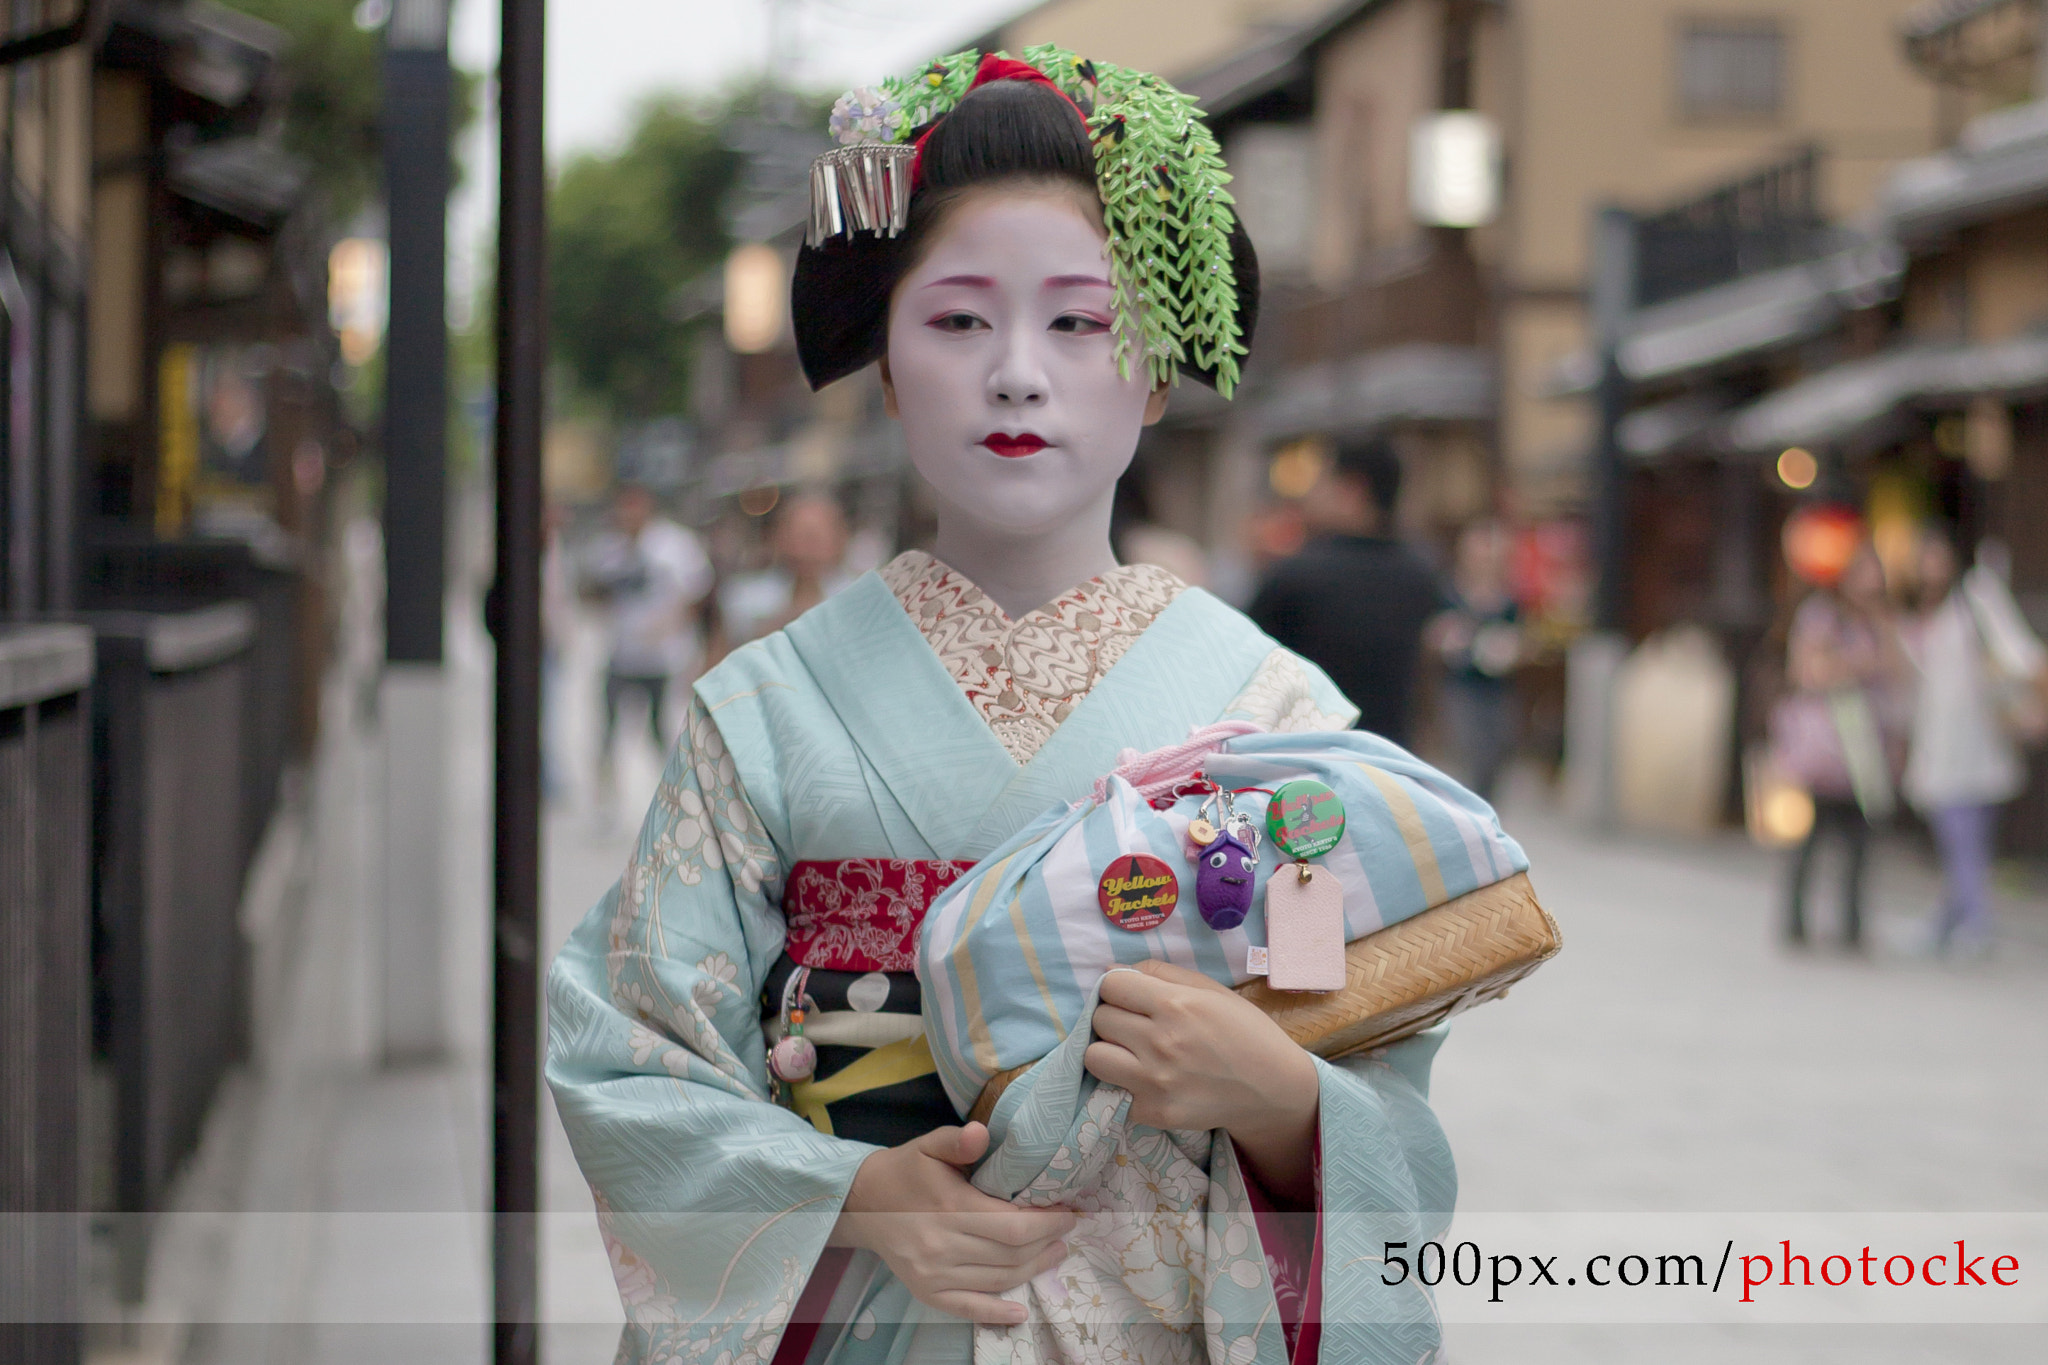 Photograph Maiko by photo cke on 500px